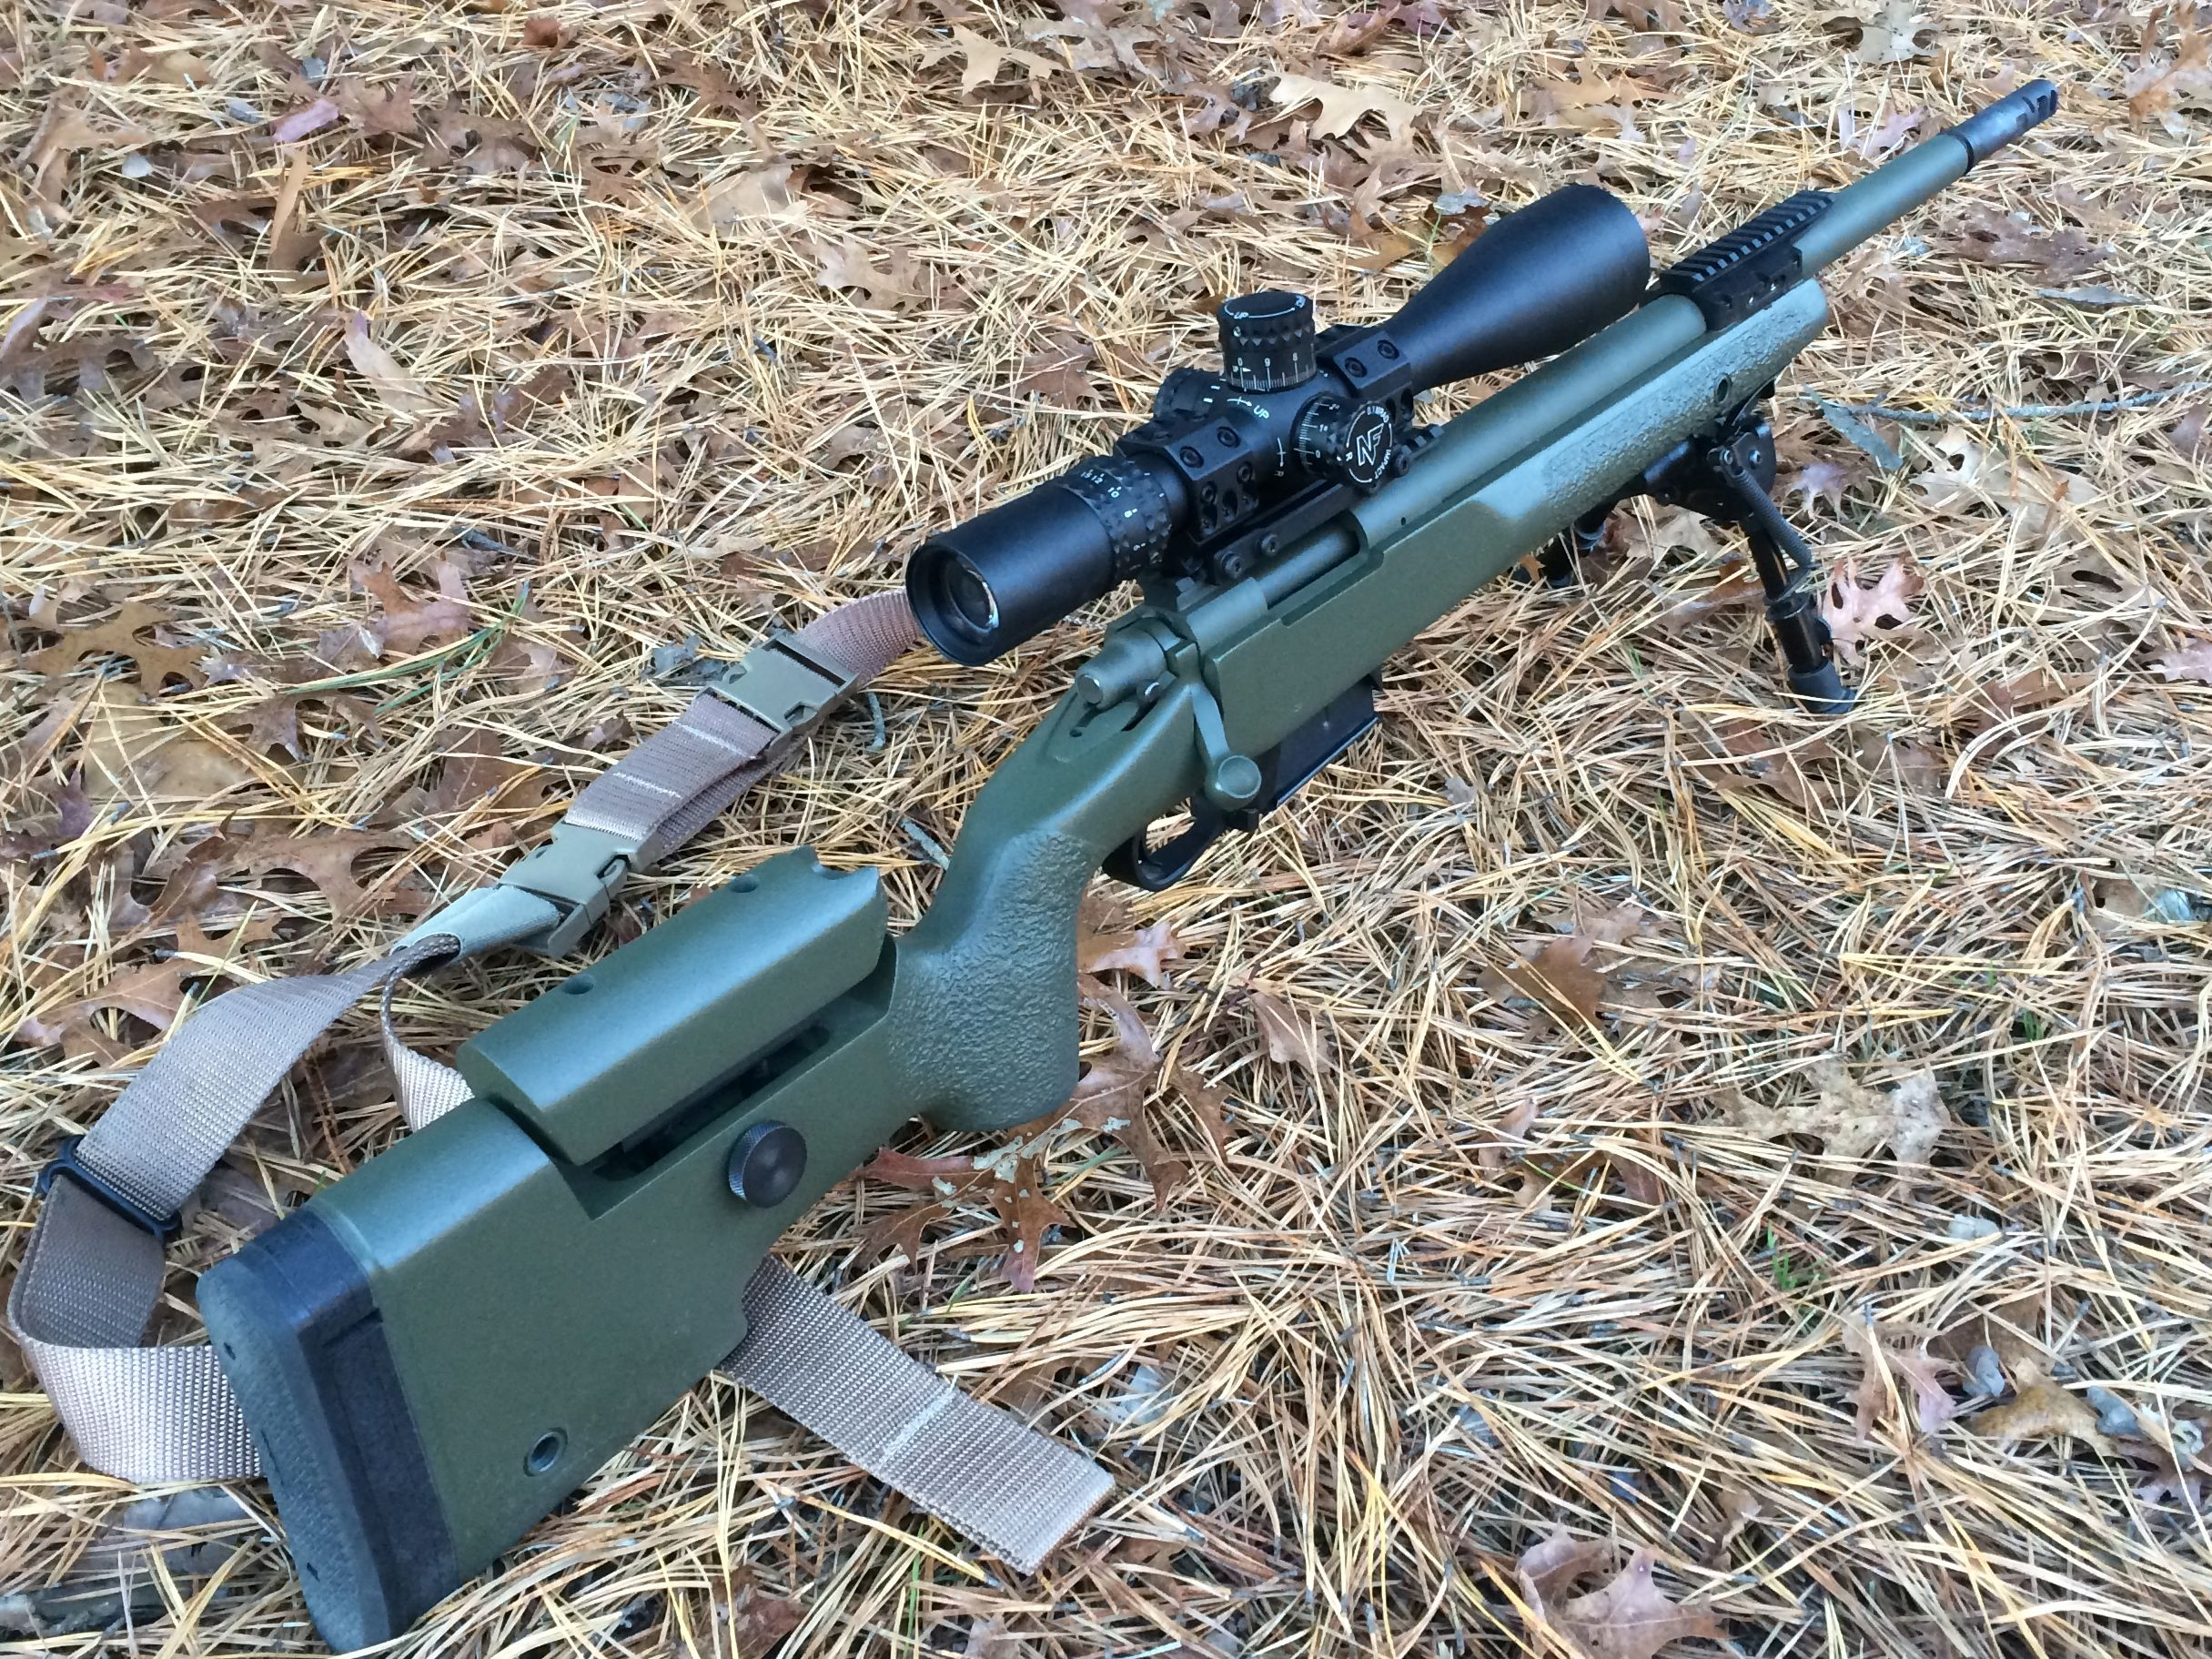 308 Winchester Load Development: 175-grain Sierra Matchking and Varget – rifleshooter.com